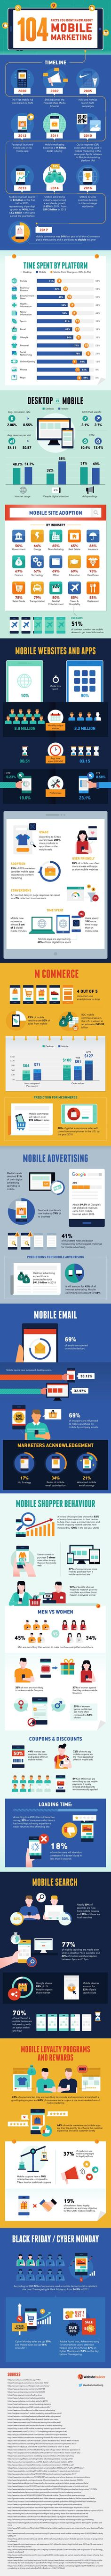 104 Reasons Why You Need to Advertise on Mobile [Infographic] | Social Media Today